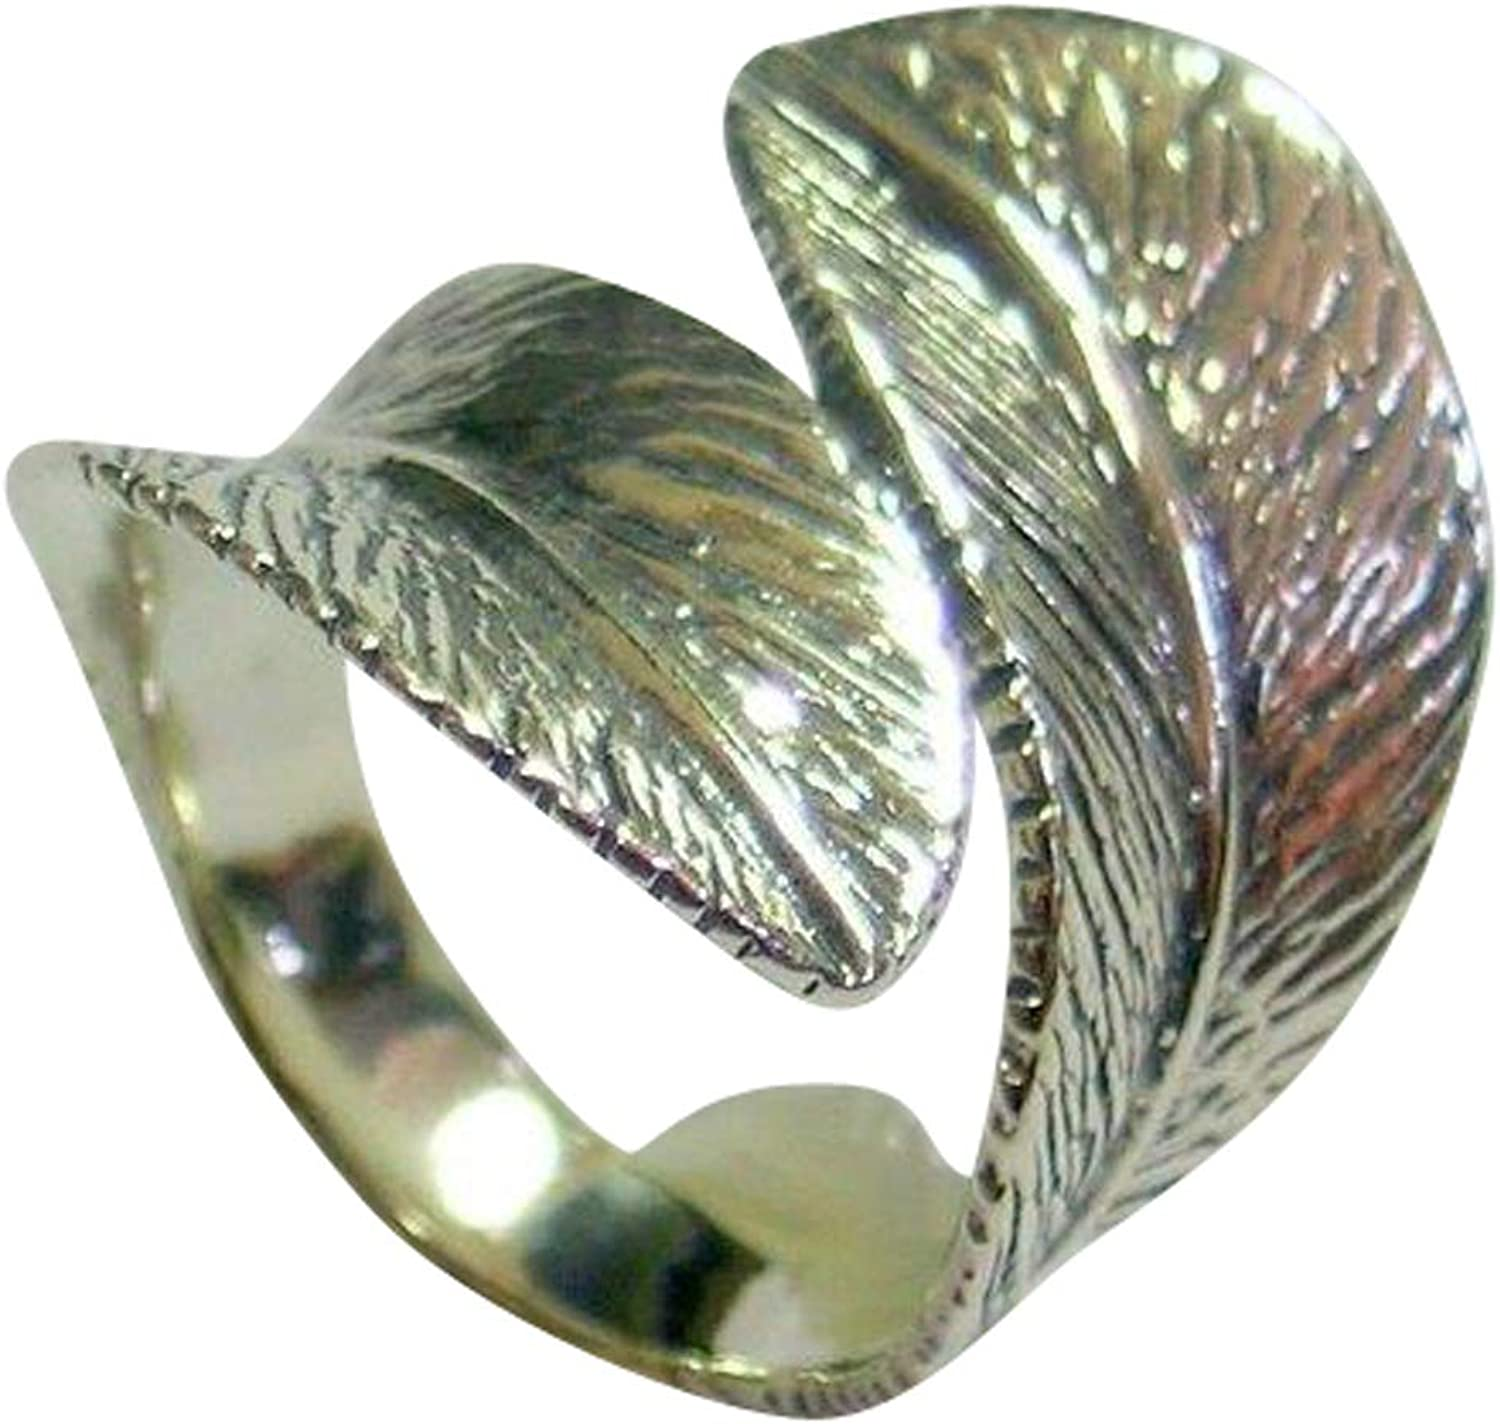 ELIMOR 2021 new JEWELRY 925 Sterling Silver wholesale Rings Women Wir for - Twisted